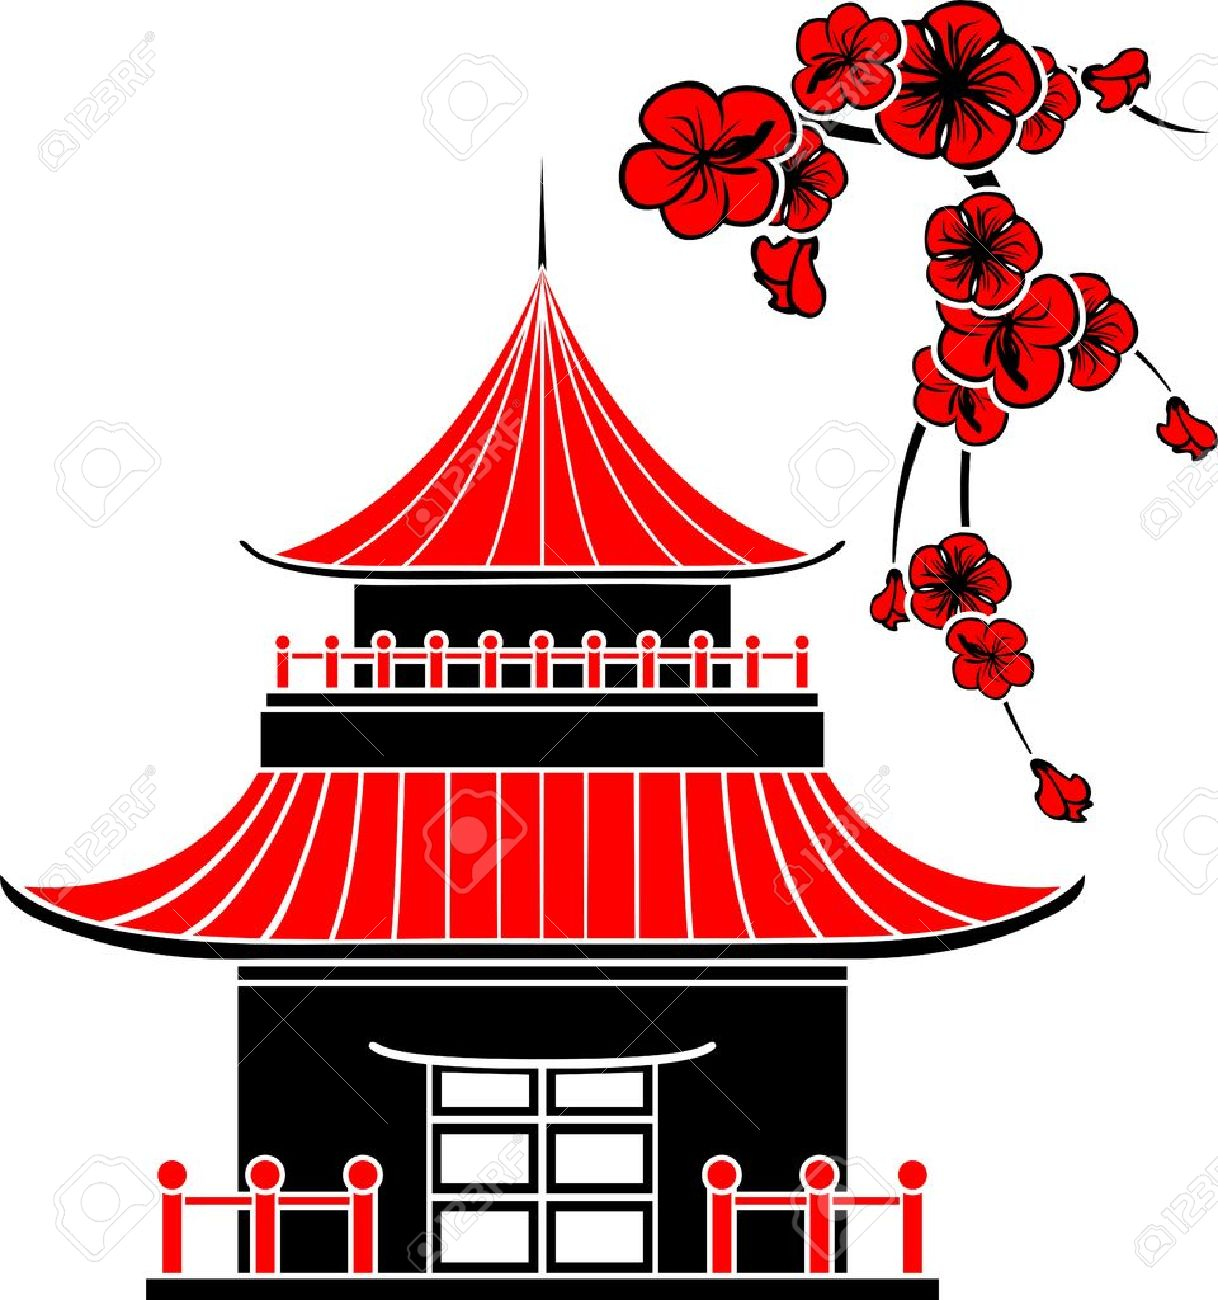 Japan traditional house clipart graphic transparent Japan traditional house clipart - ClipartFest graphic transparent